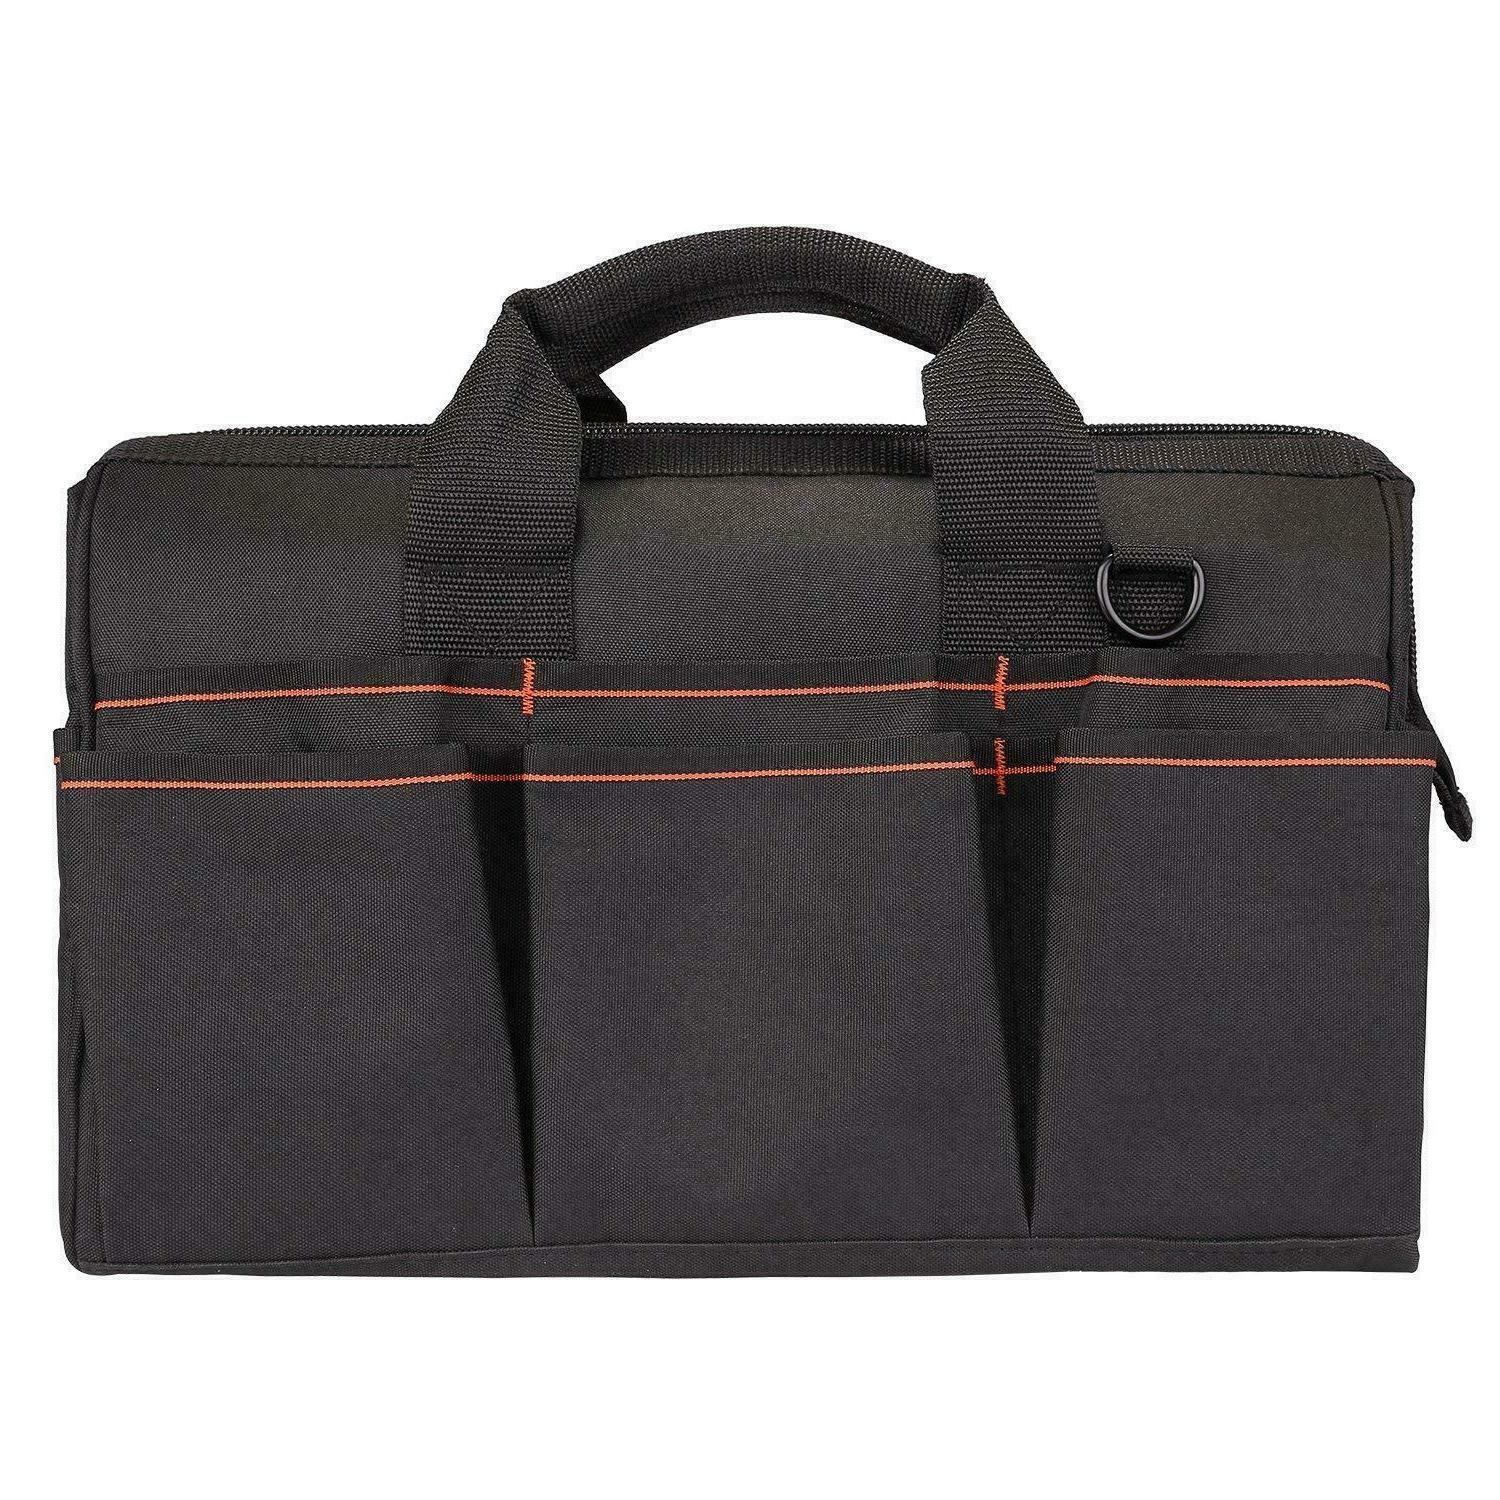 "DEKO Bag 8.6"" x9.4"" Large 7 Duty Water"